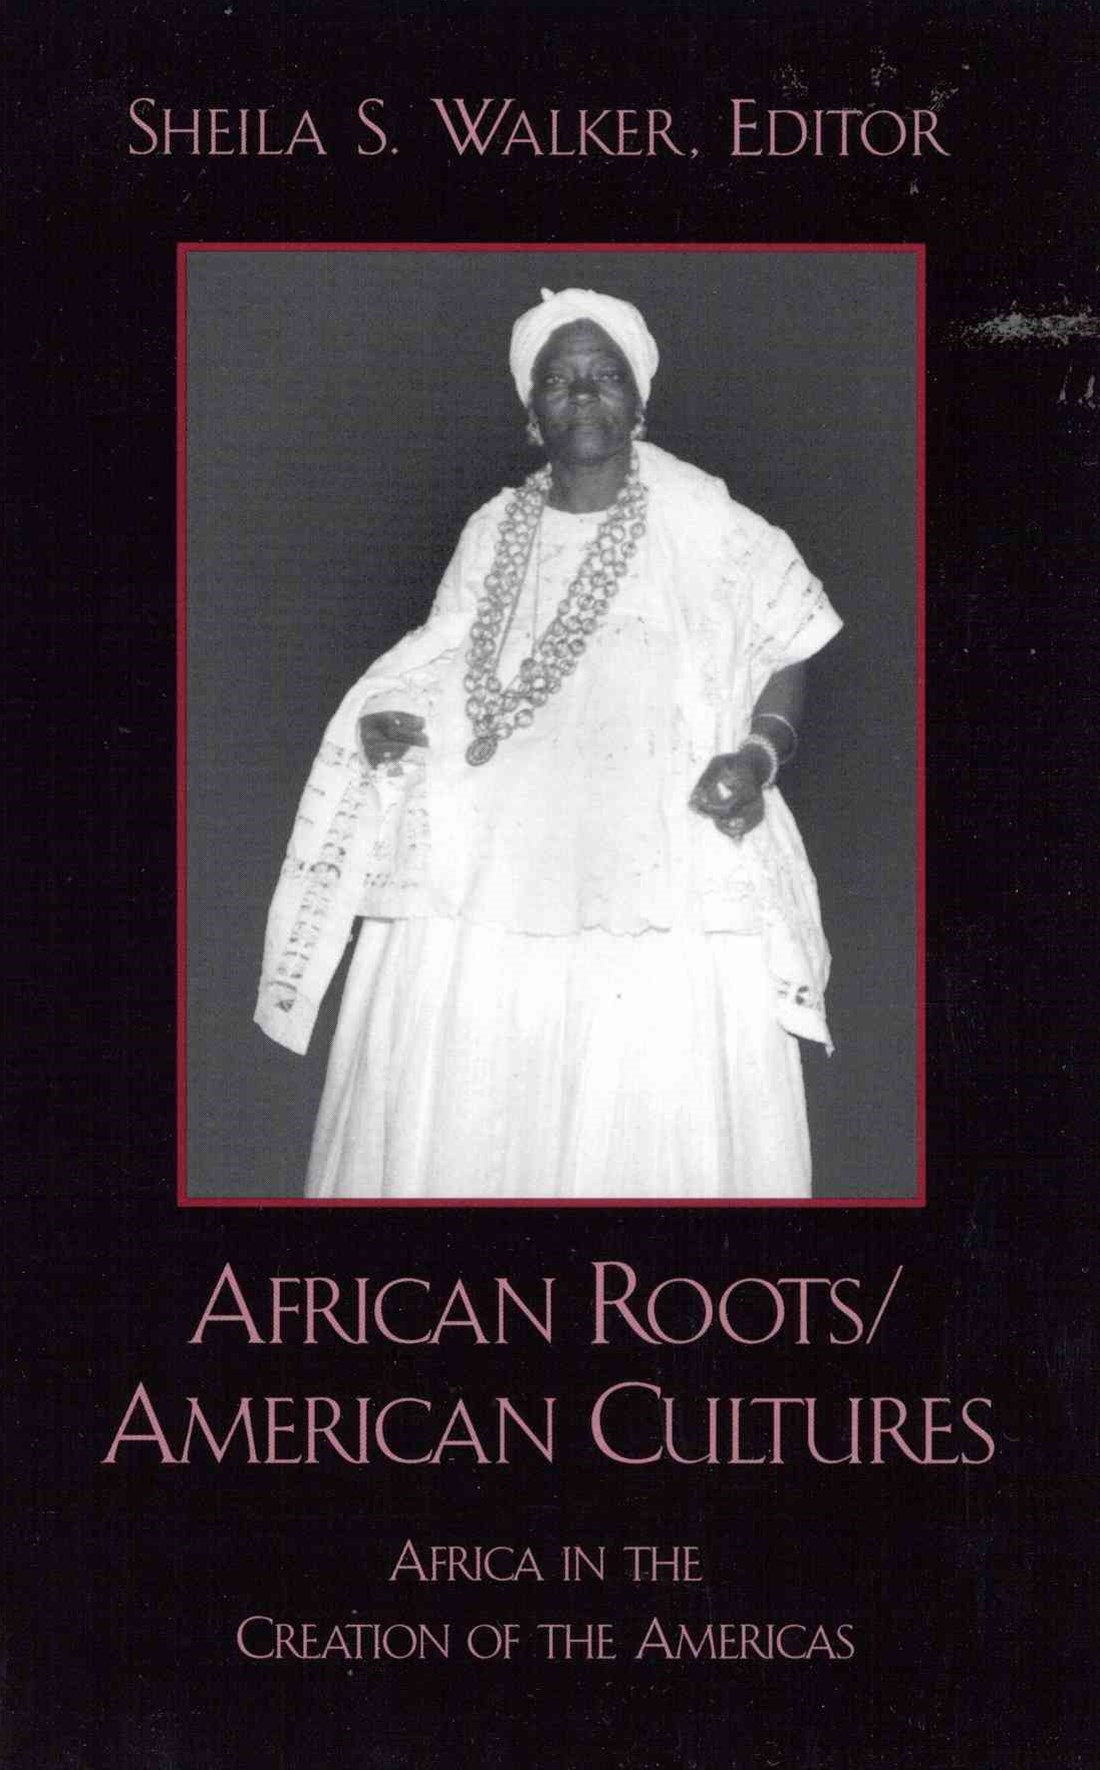 African Roots / American Cultures